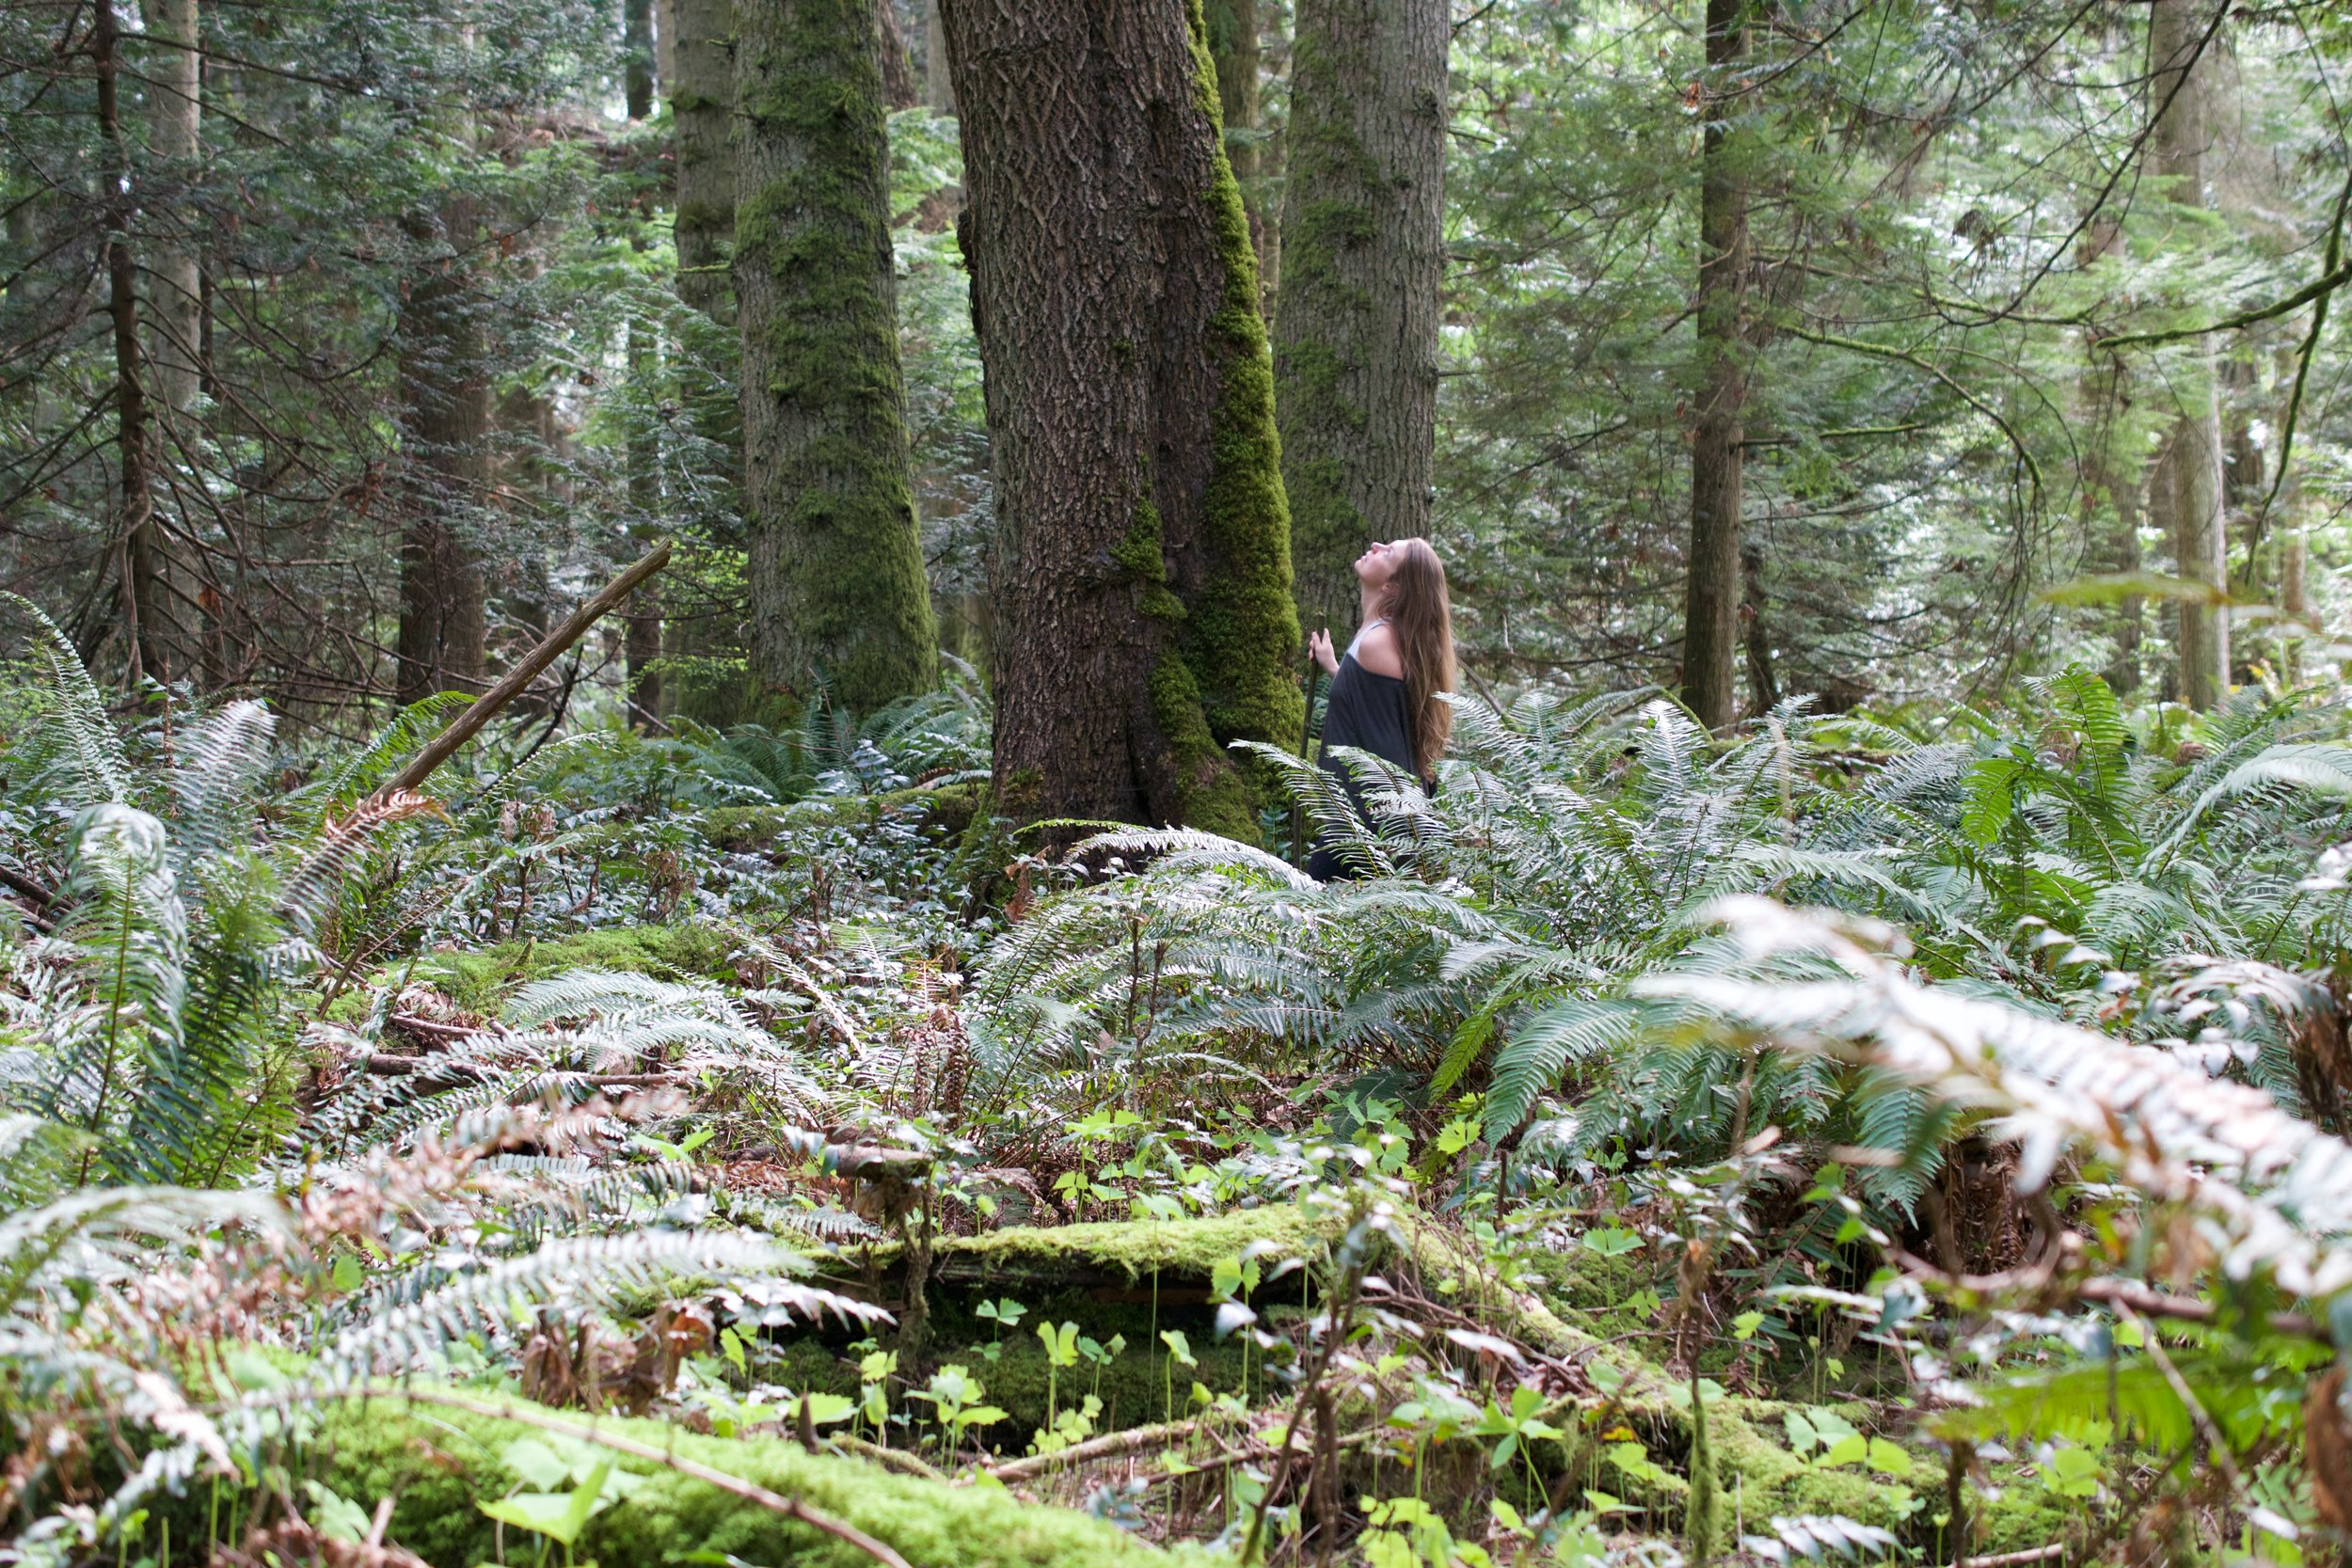 A tremendous sense of calm when you slow yourself down to the pace and quiet of the movements of the forest. On MRI researchers have seen that our brains send more blood flow and activity to the areas of the brain that are associated with empathy and altruism when looking at natural scenes.